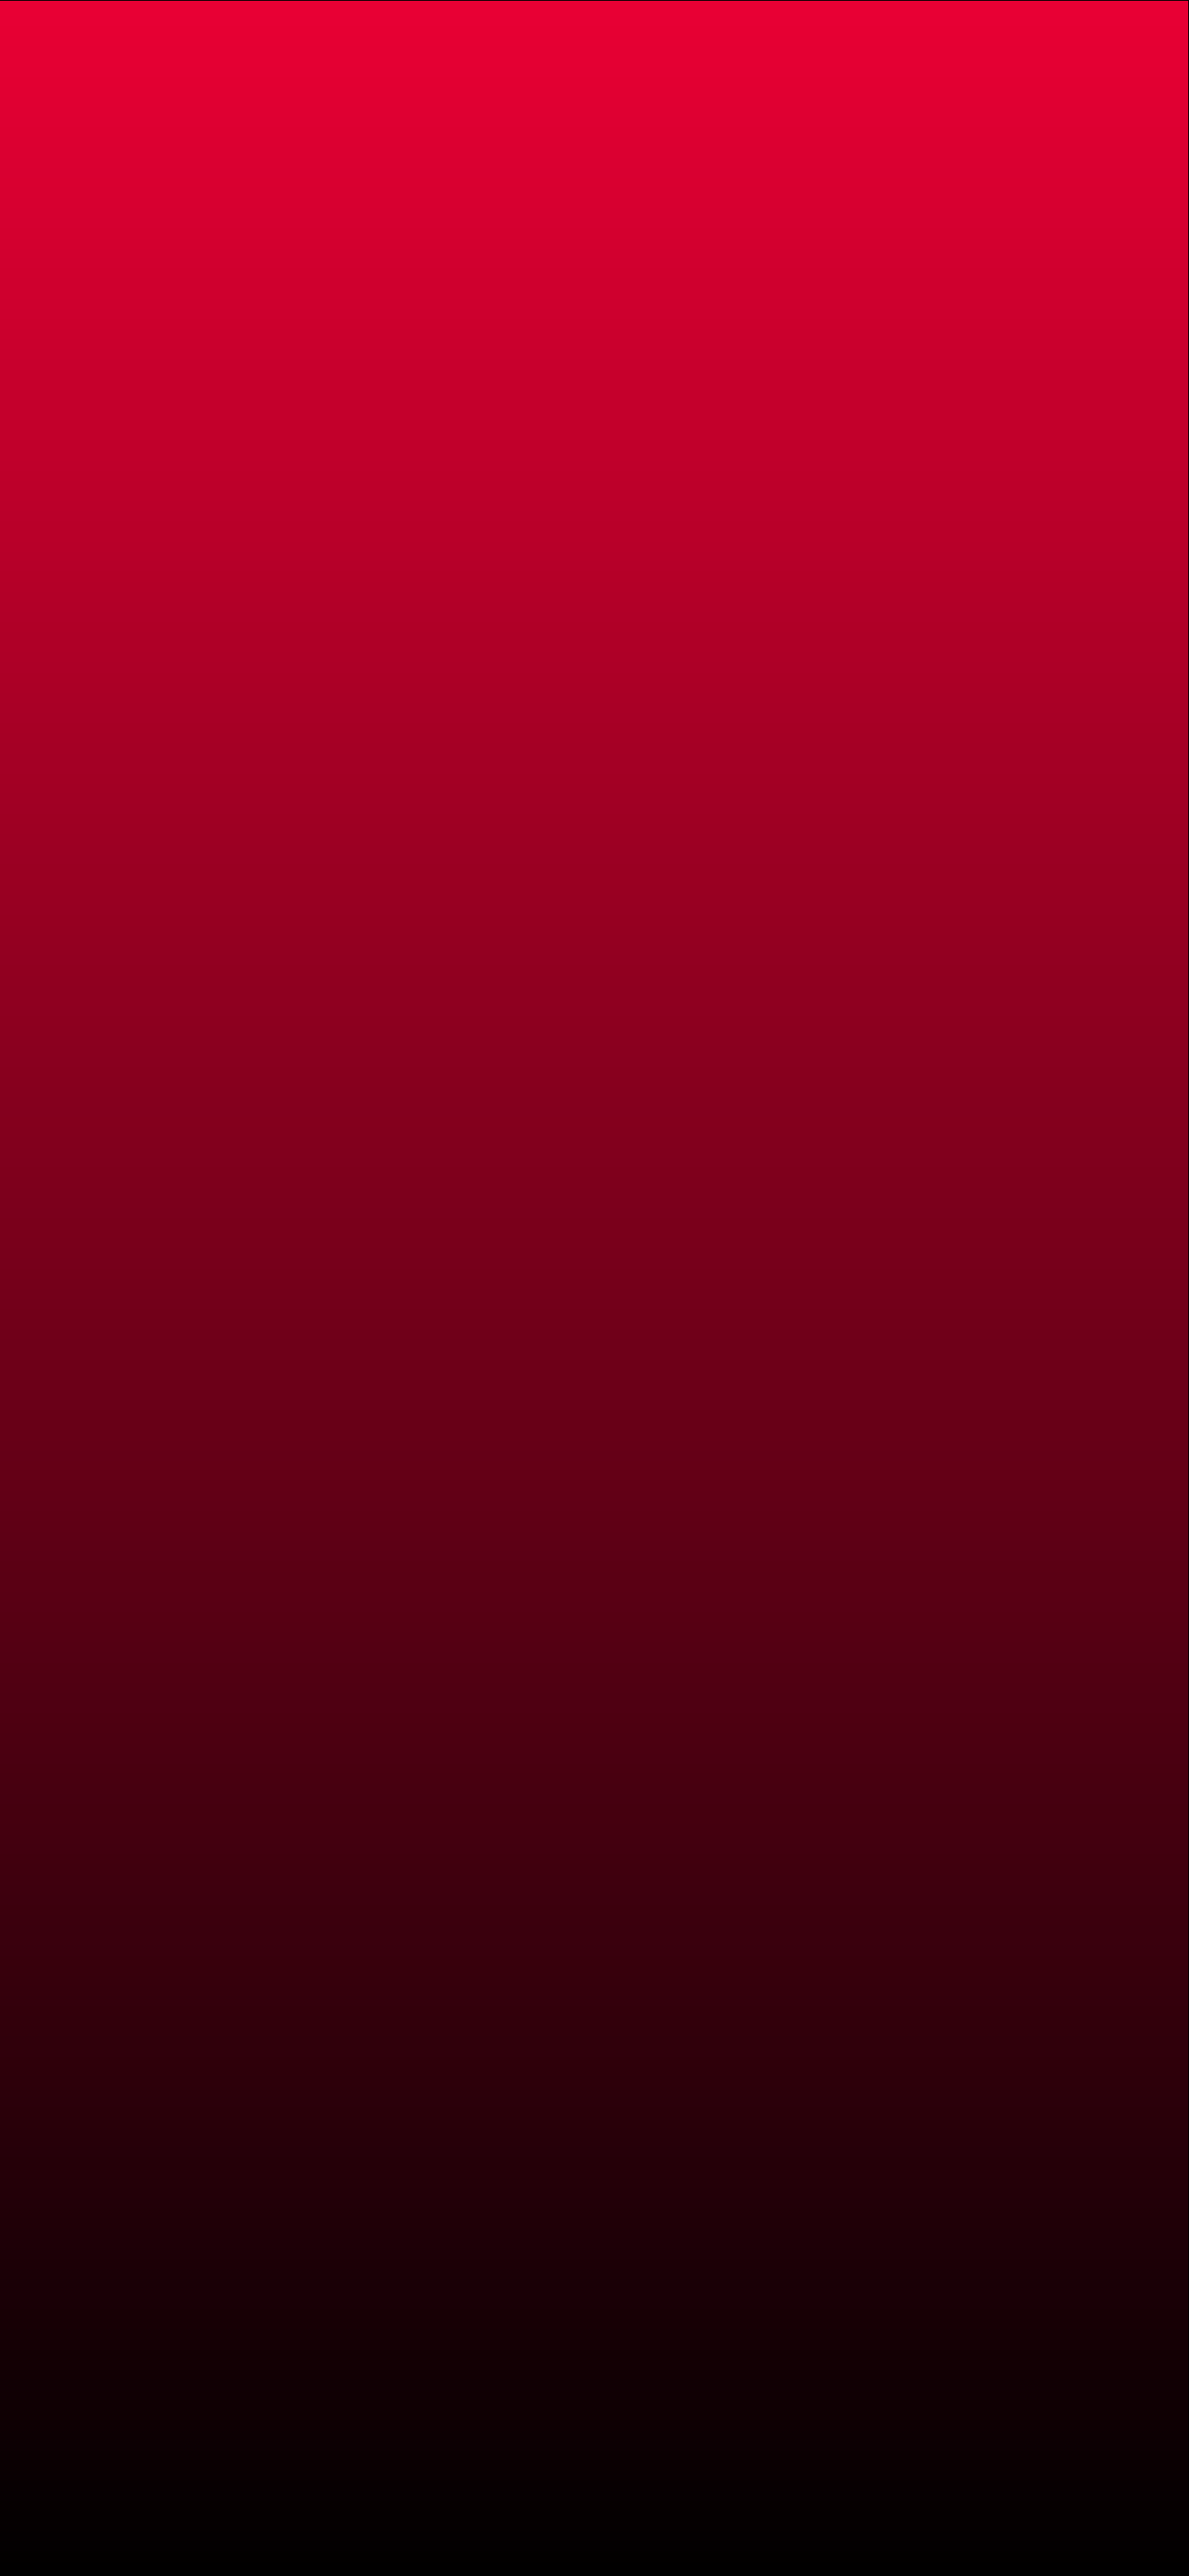 Gradient Wallpaper For Iphone 11 In 2020 Red Texture Background Ombre Wallpapers Dark Red Wallpaper